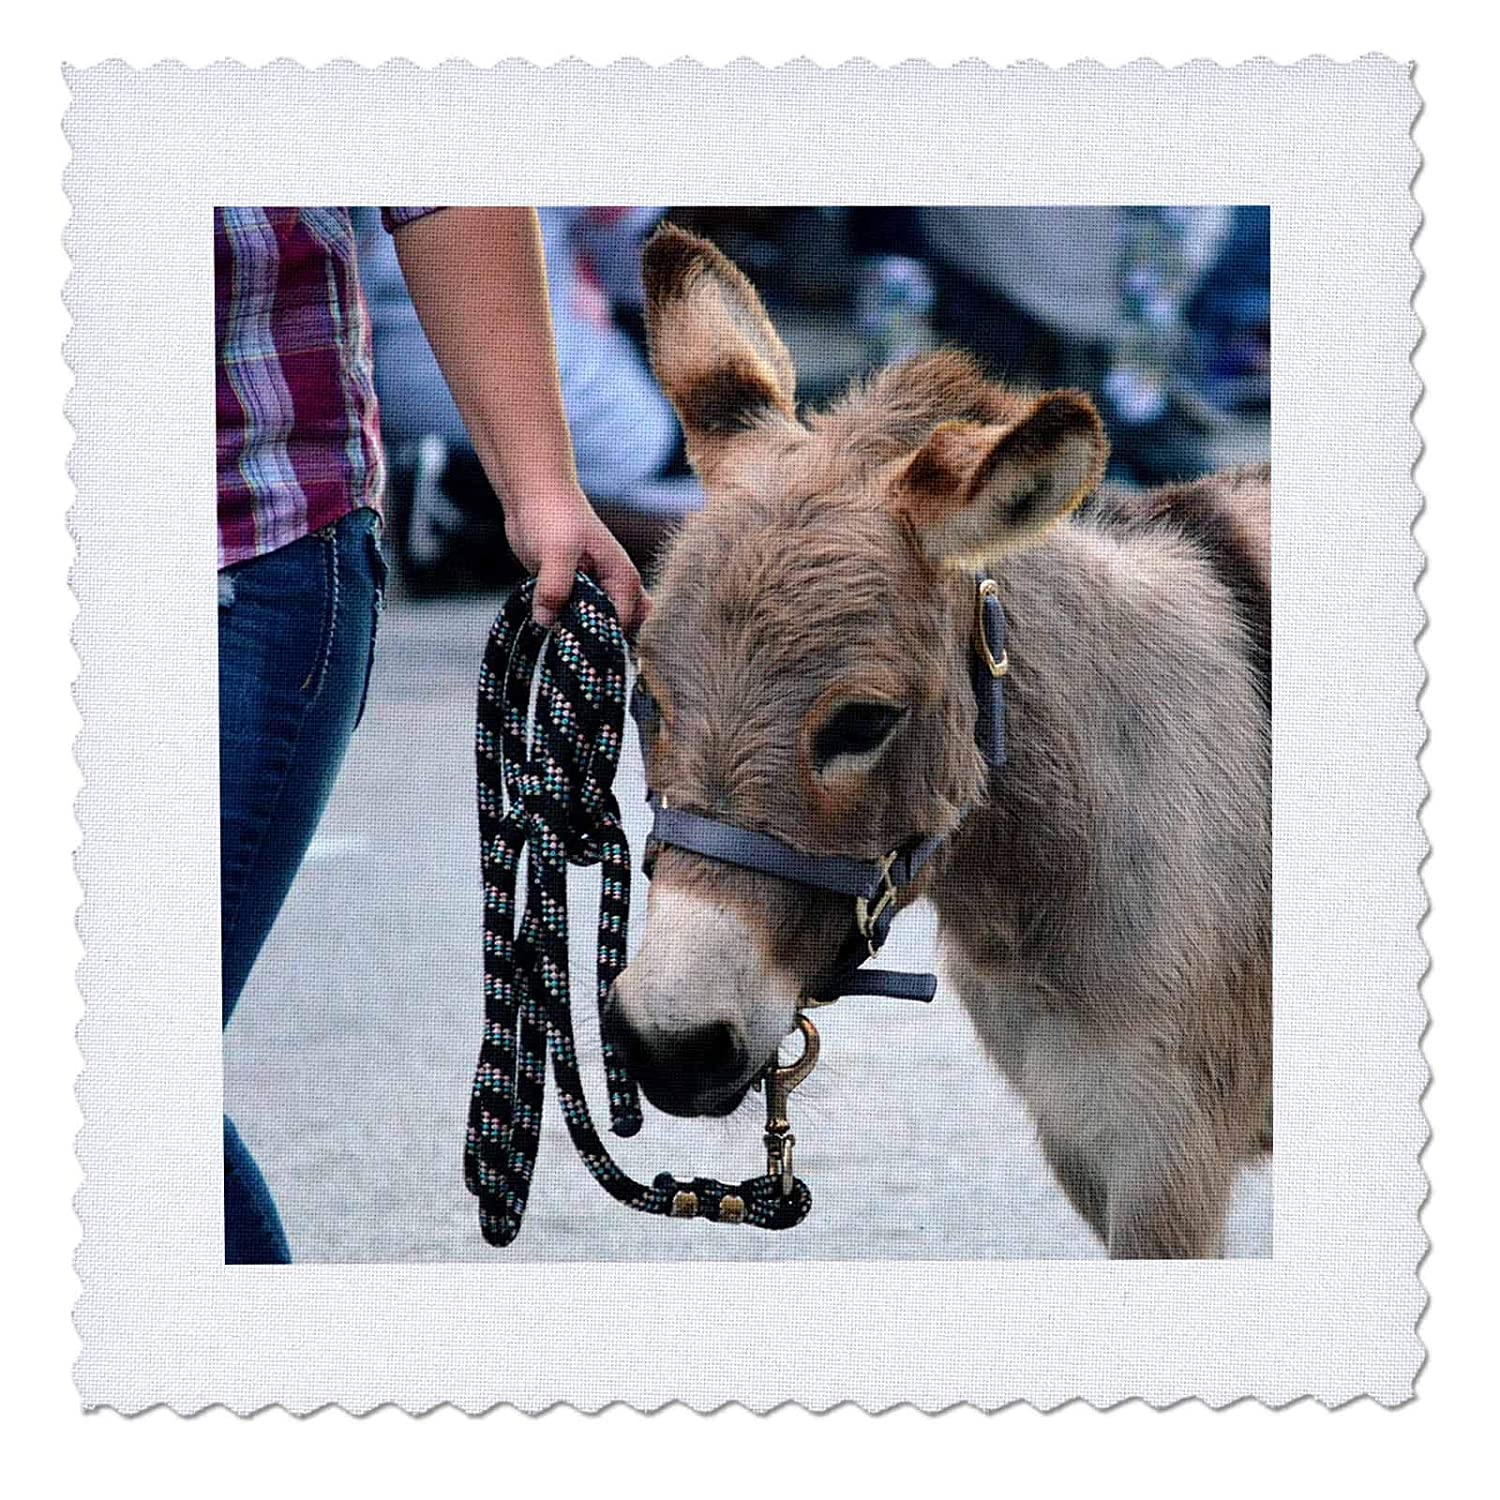 qs/_294155/_1 Miniature Donkey Head Halter Animal 10x10 inch Quilt Square 3dRose Susans Zoo Crew Animal